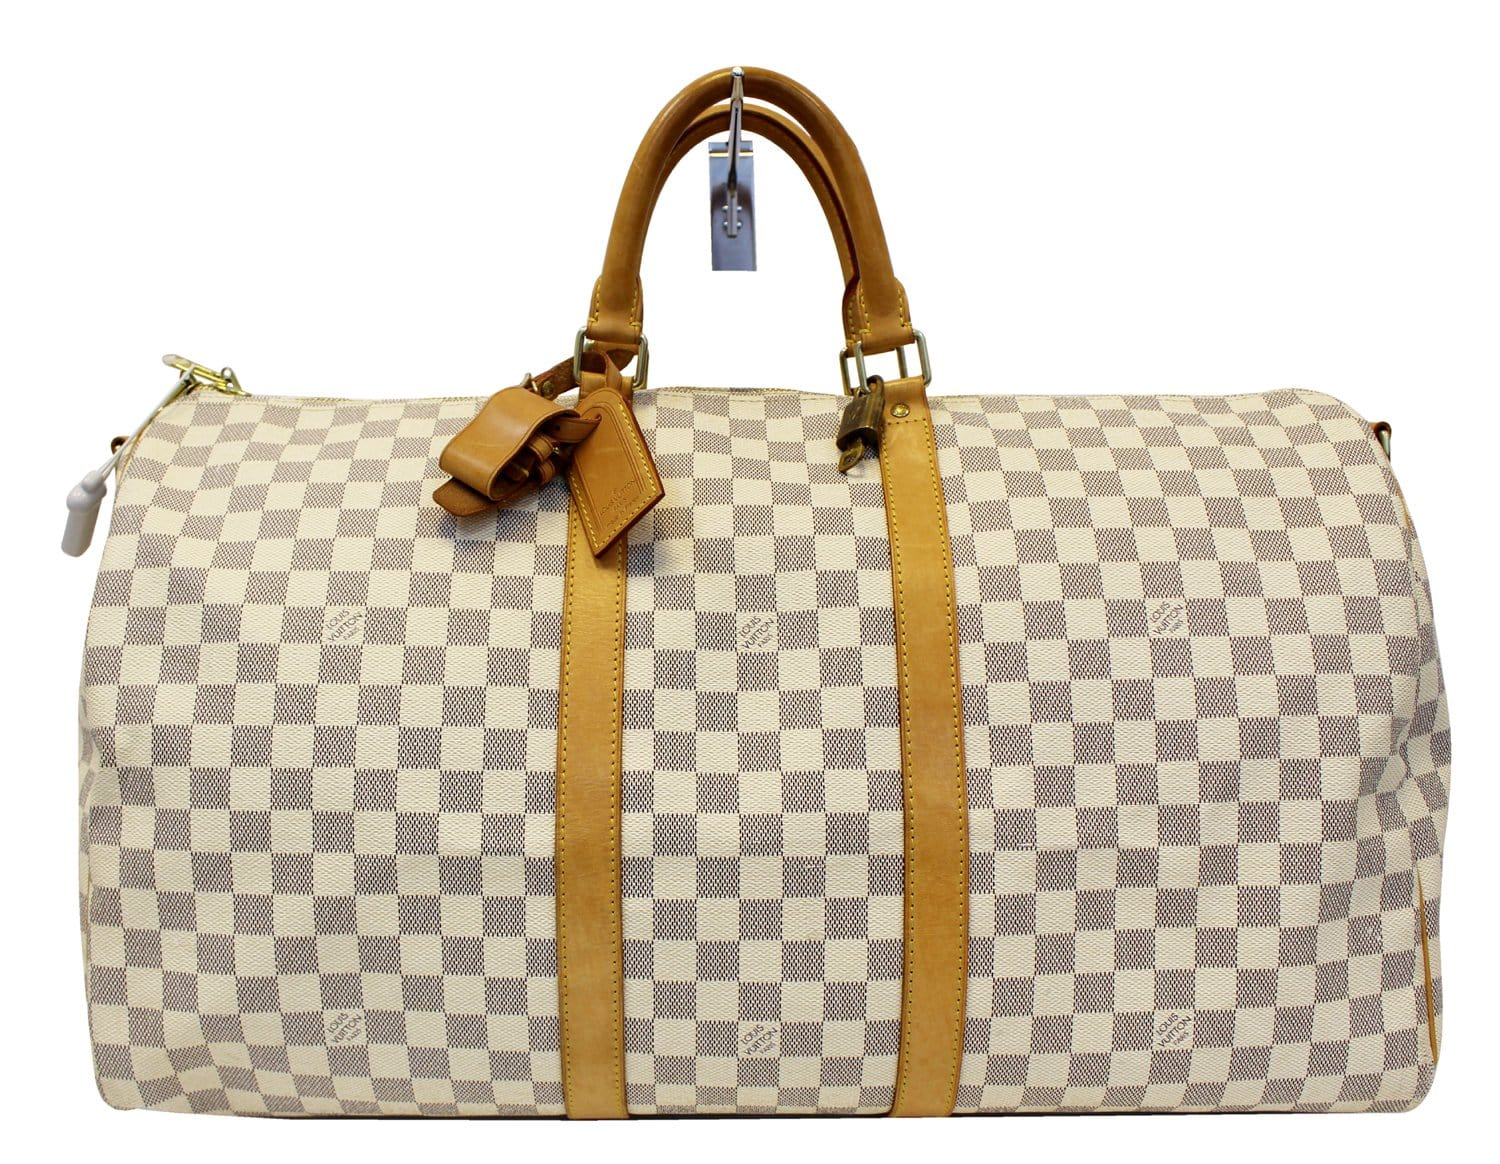 99f616fc337 LOUIS VUITTON Damier Azur Keepall Bandouliere 55 Travel Bag - 30% Off